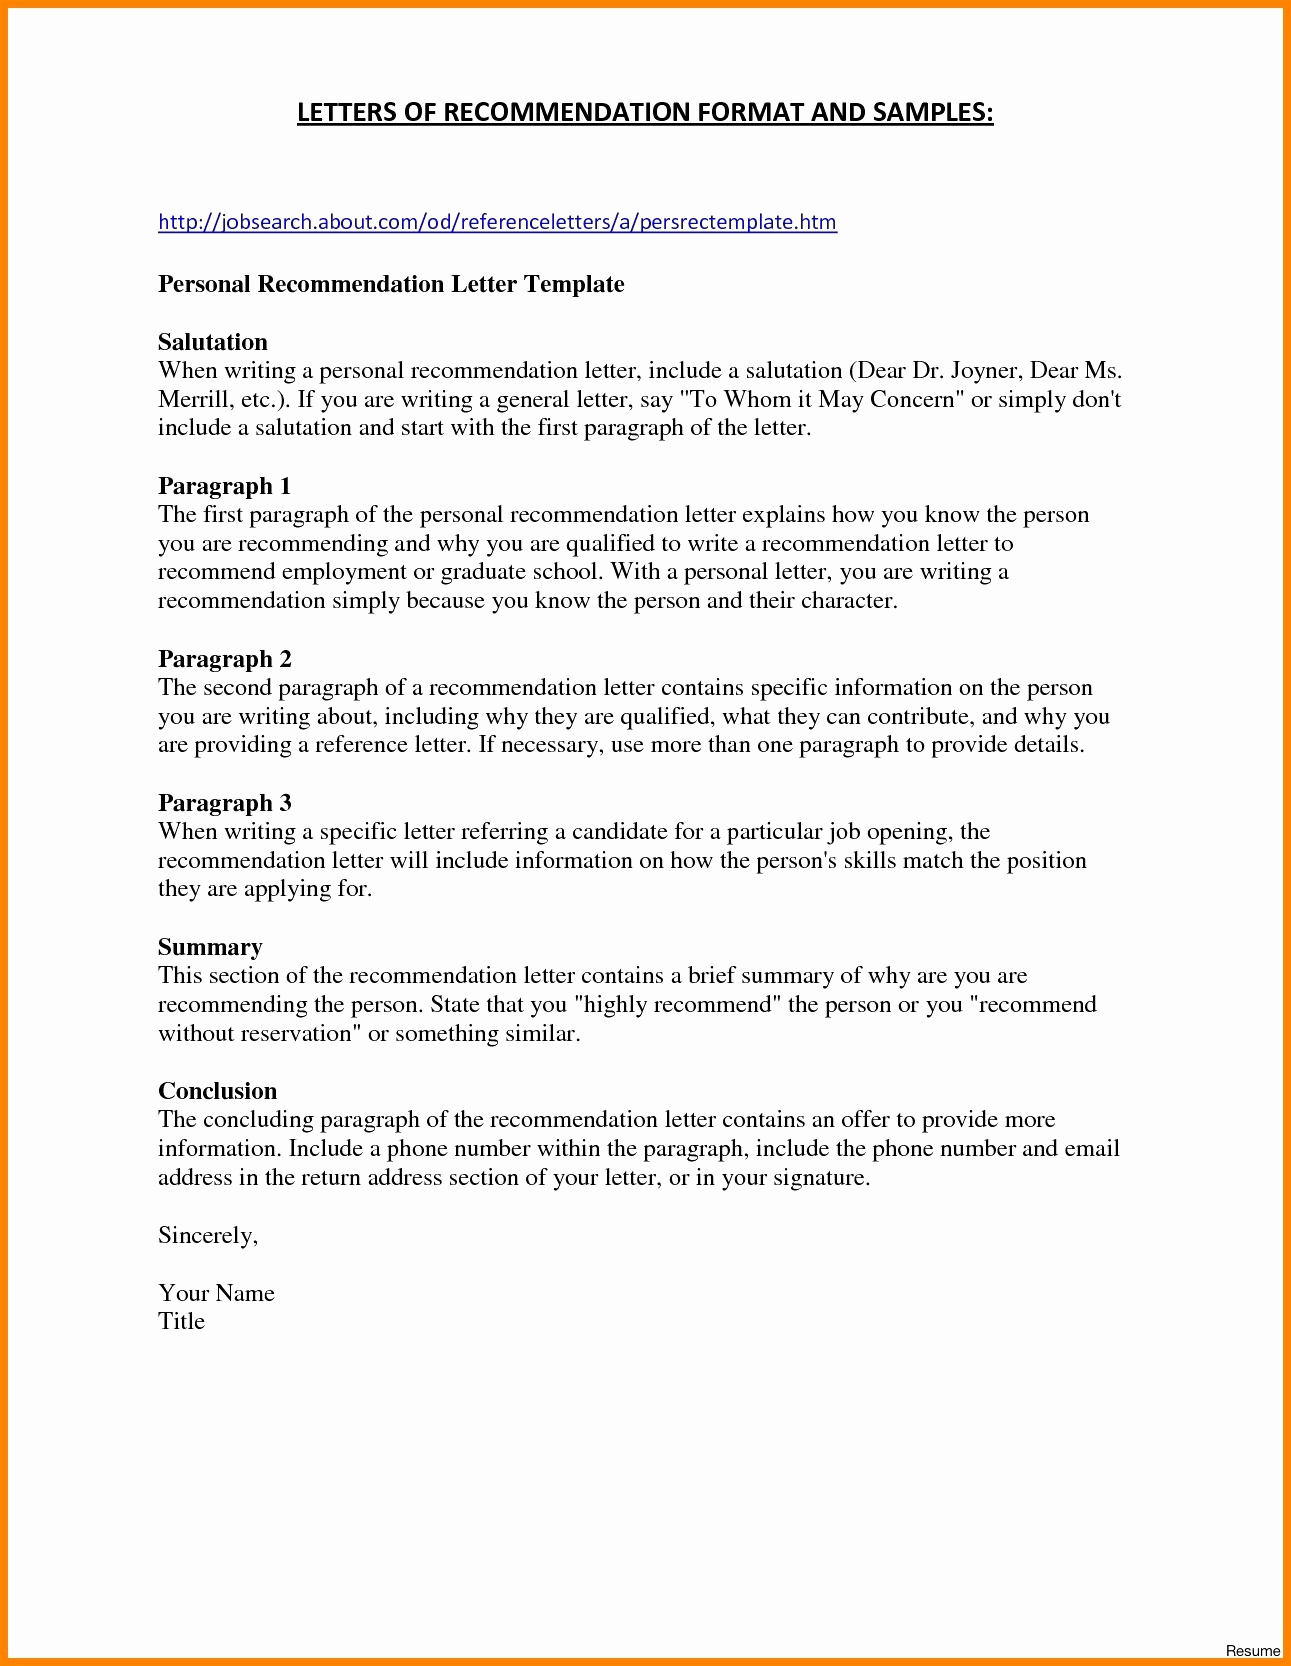 Acting Resume Template for Microsoft Word - Acting Resume Template for Microsoft Word Unique Acting Resume